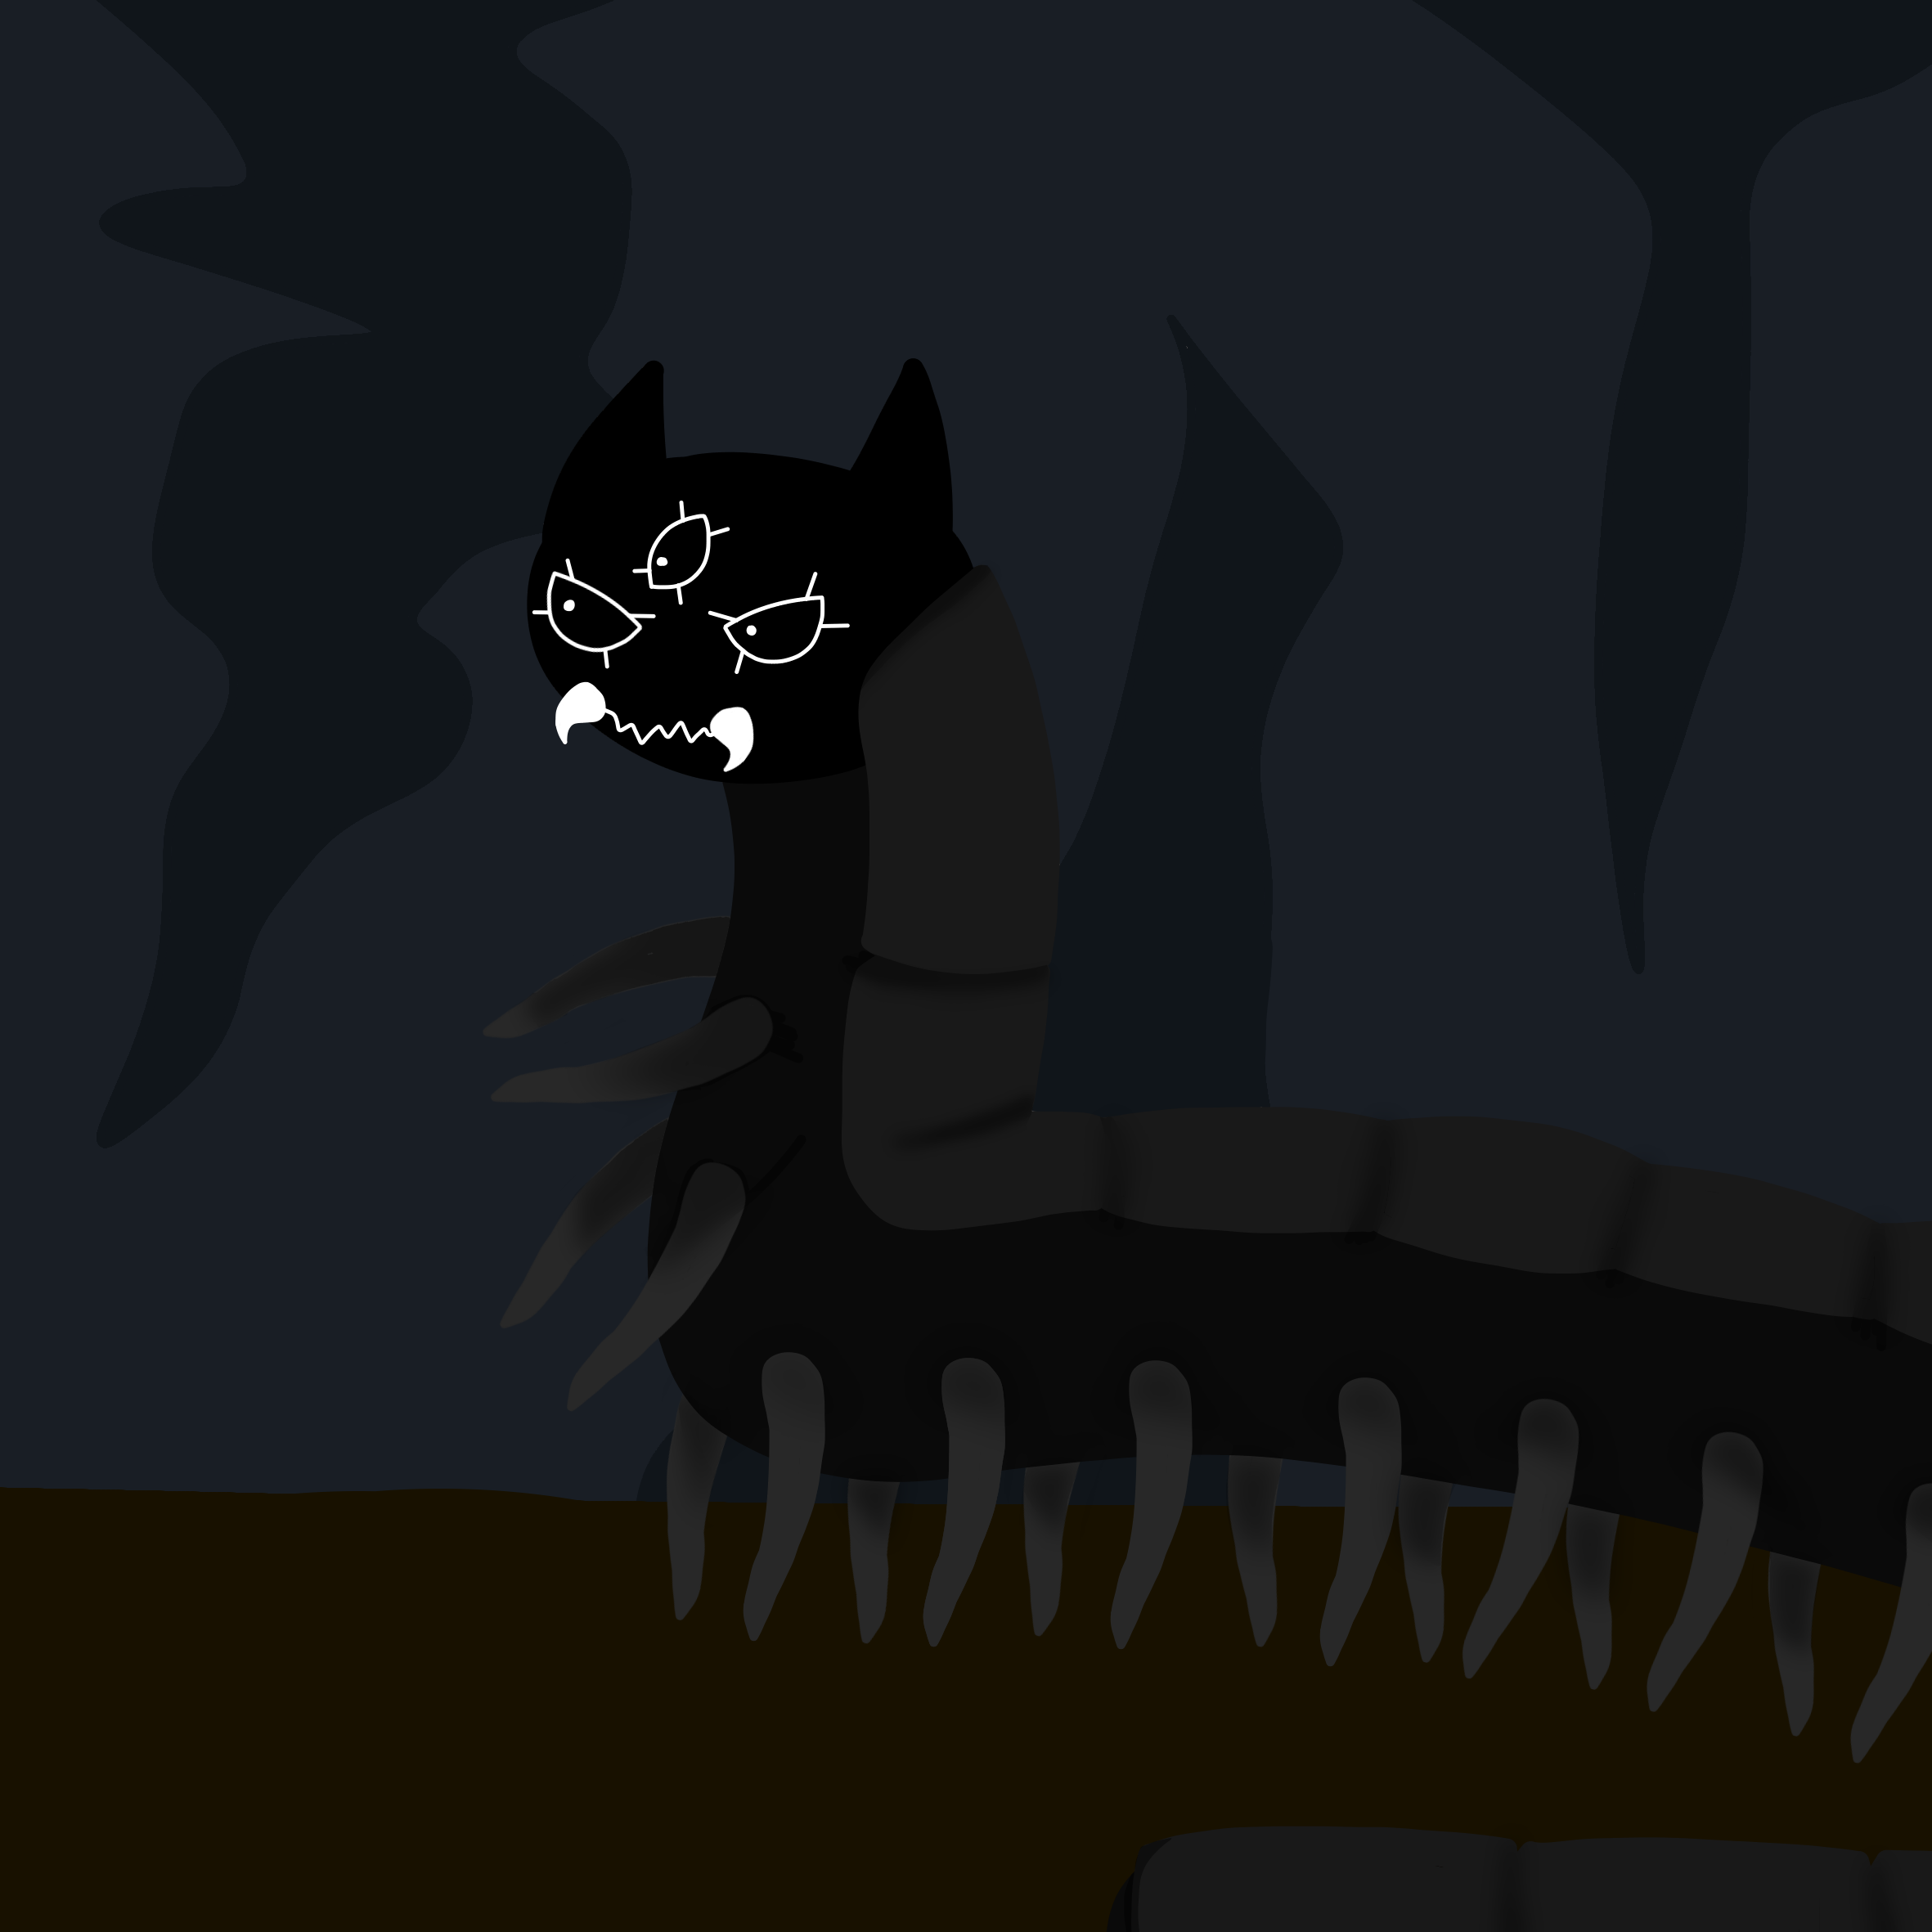 Centicat, the abomination i made